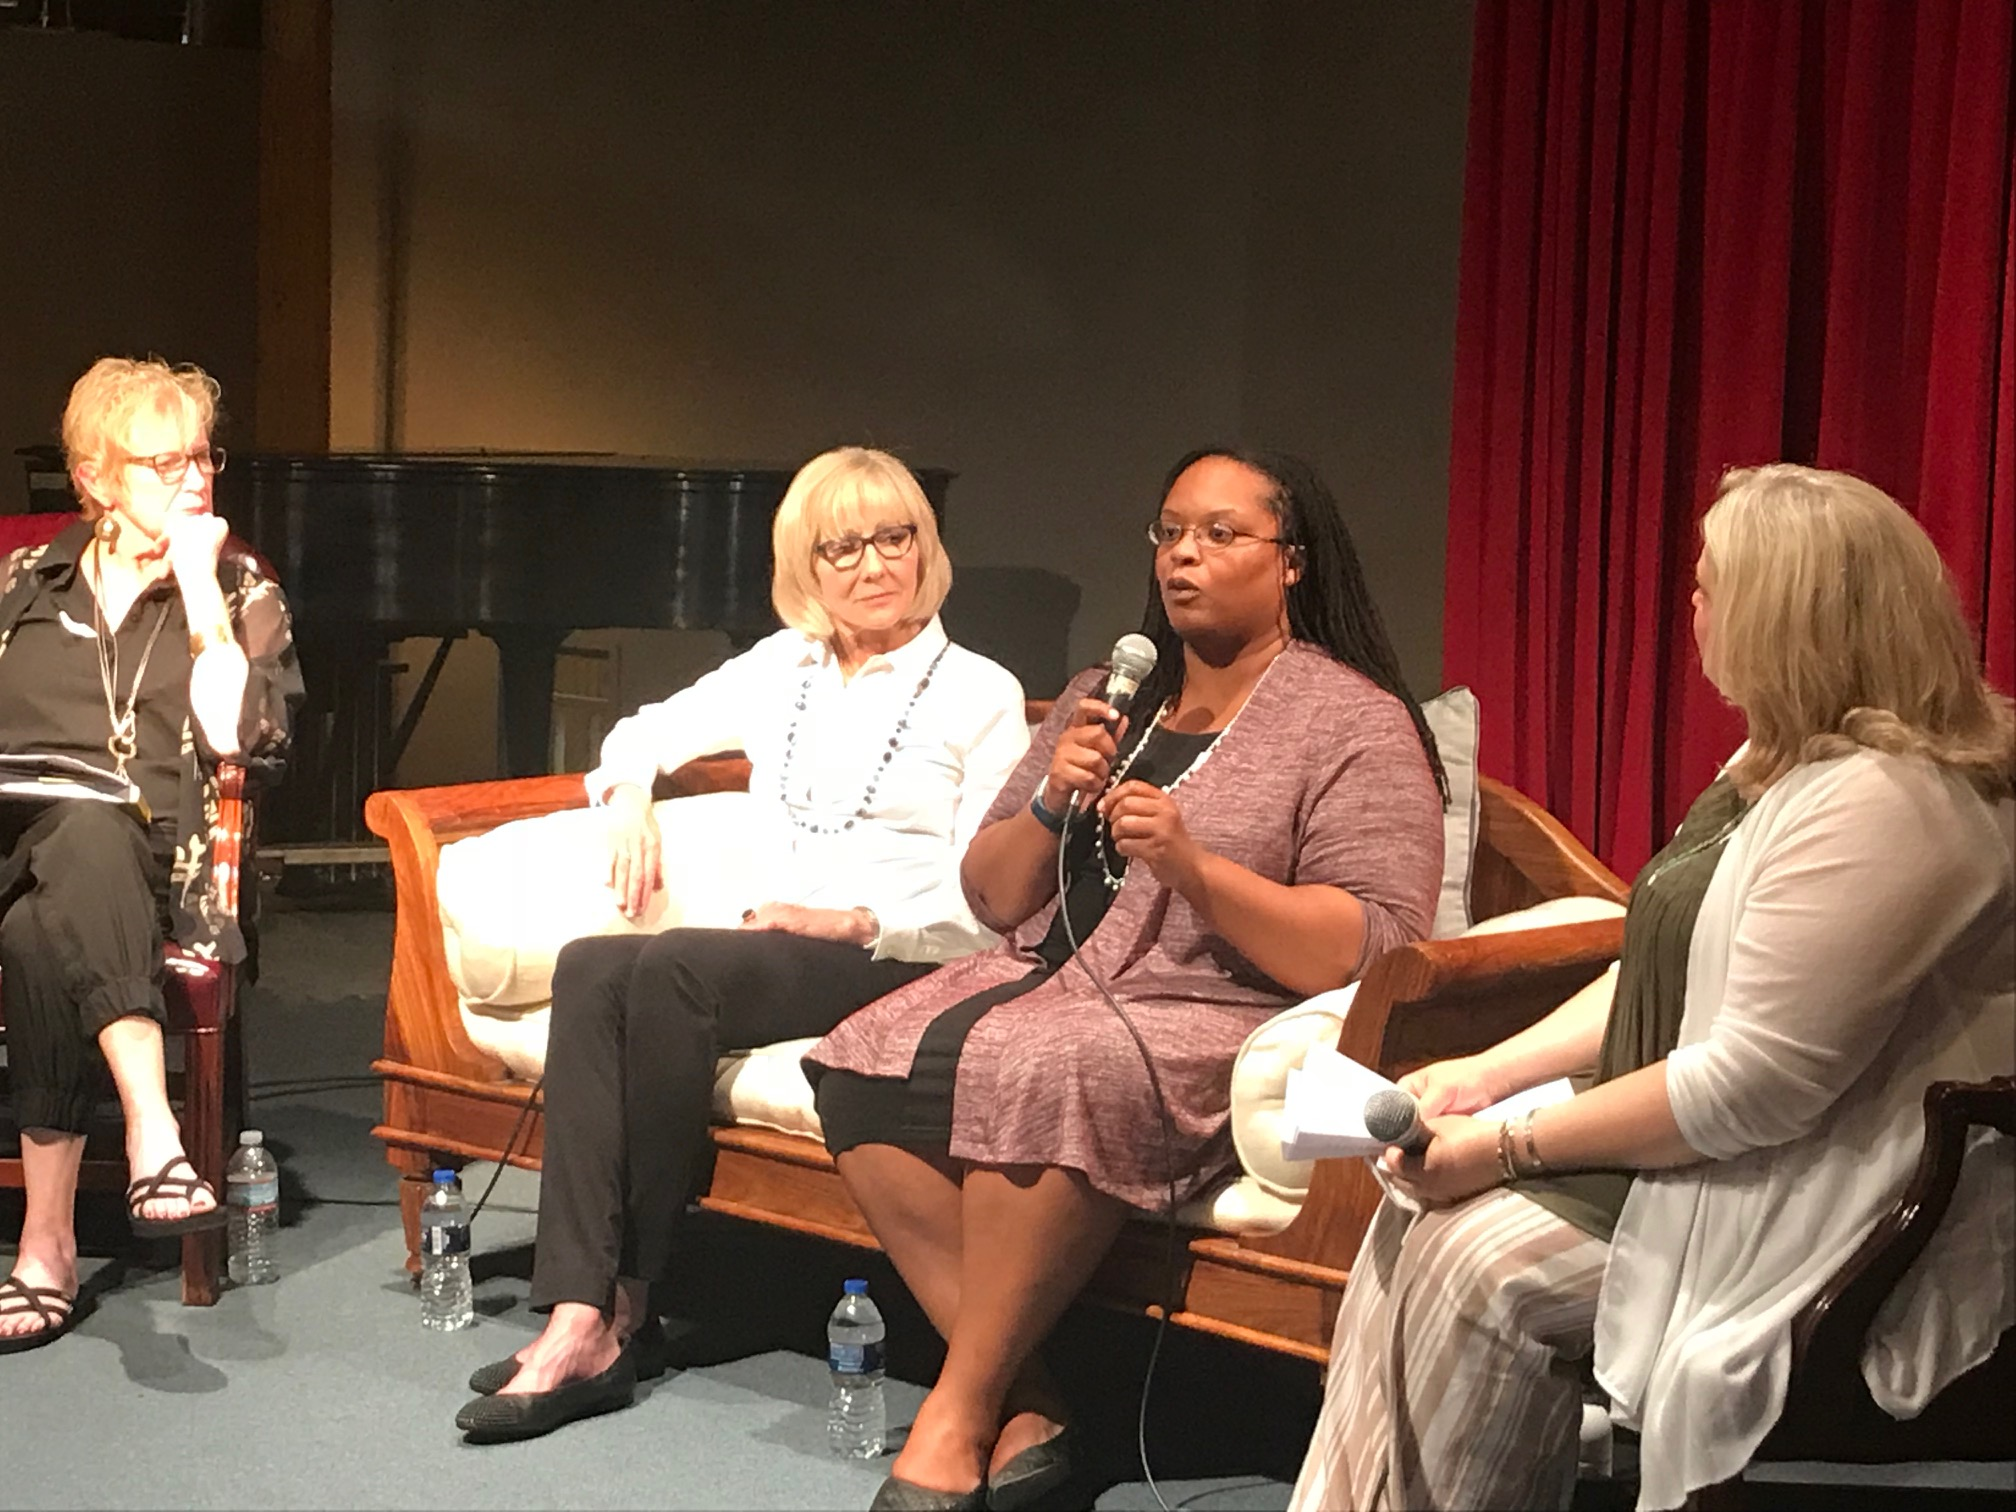 (l.to r.) Rickey Gard Diamond, author of Screwnomics; Linda Gartz, author of Redlined, Elizabeth McCree, Benton Harbor, Michigan attorney, and Kim Jorgensen Gane, St. Joseph, Michigan realtor, discuss the real life results of economic policies with an audience at The Box Factory in St. Joseph, July 31, 2018. Ami Hendrickson (not pictured) co-hosted the event, and reported on it at MuseInks.